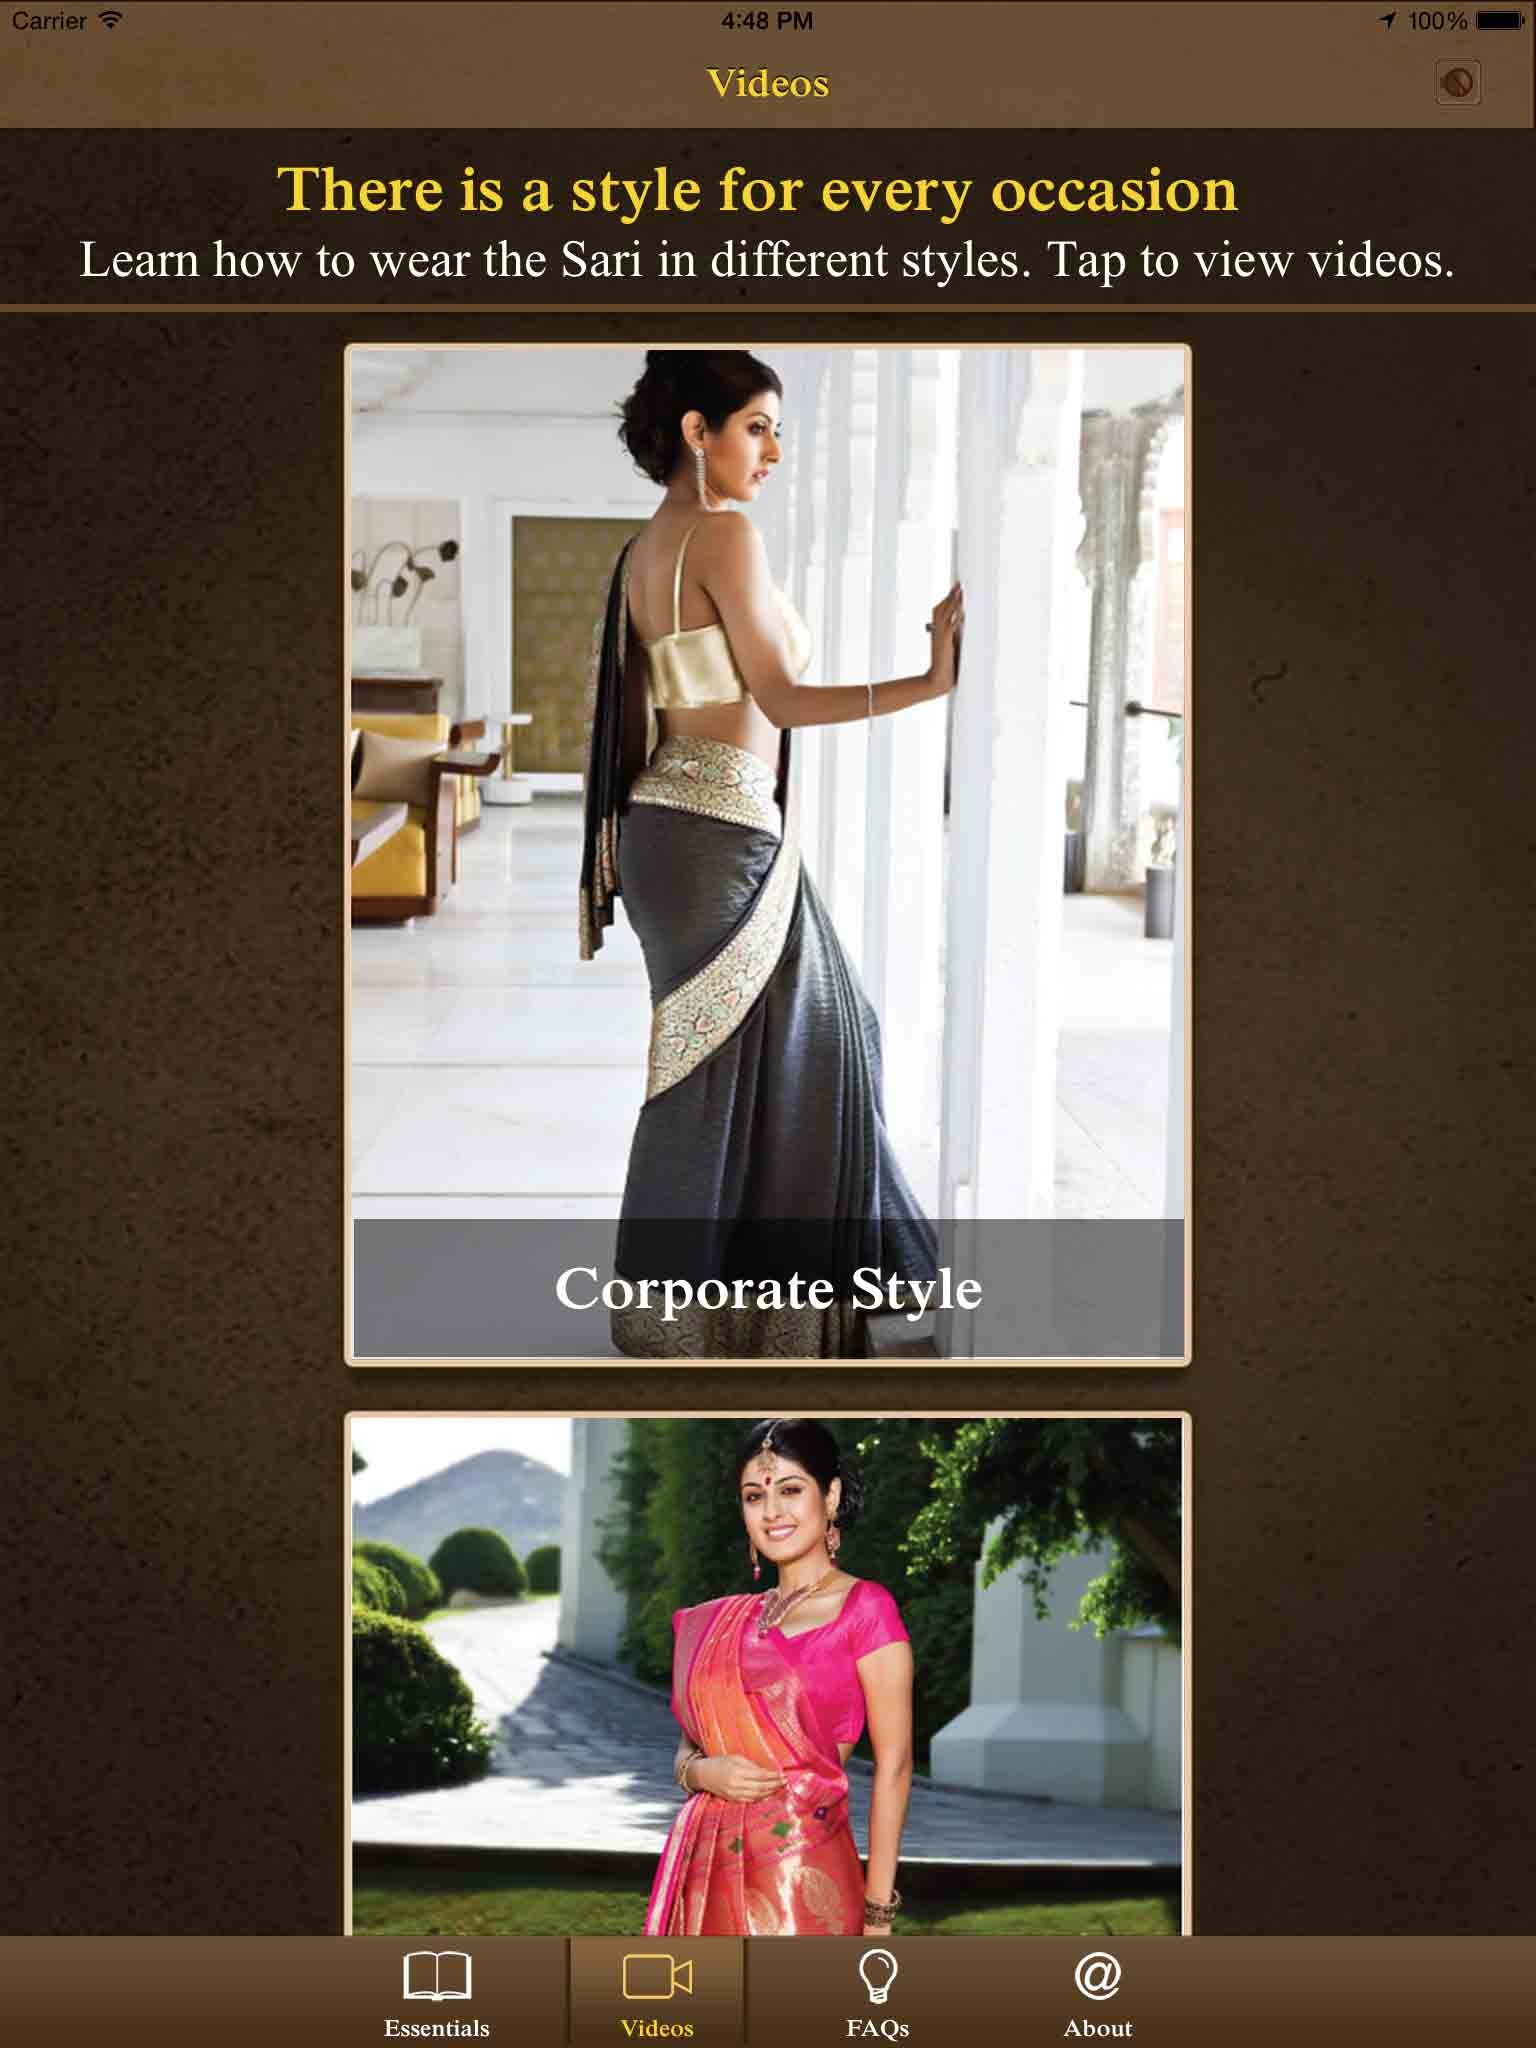 Kalpana Shah, Learn Sari,Technology, App